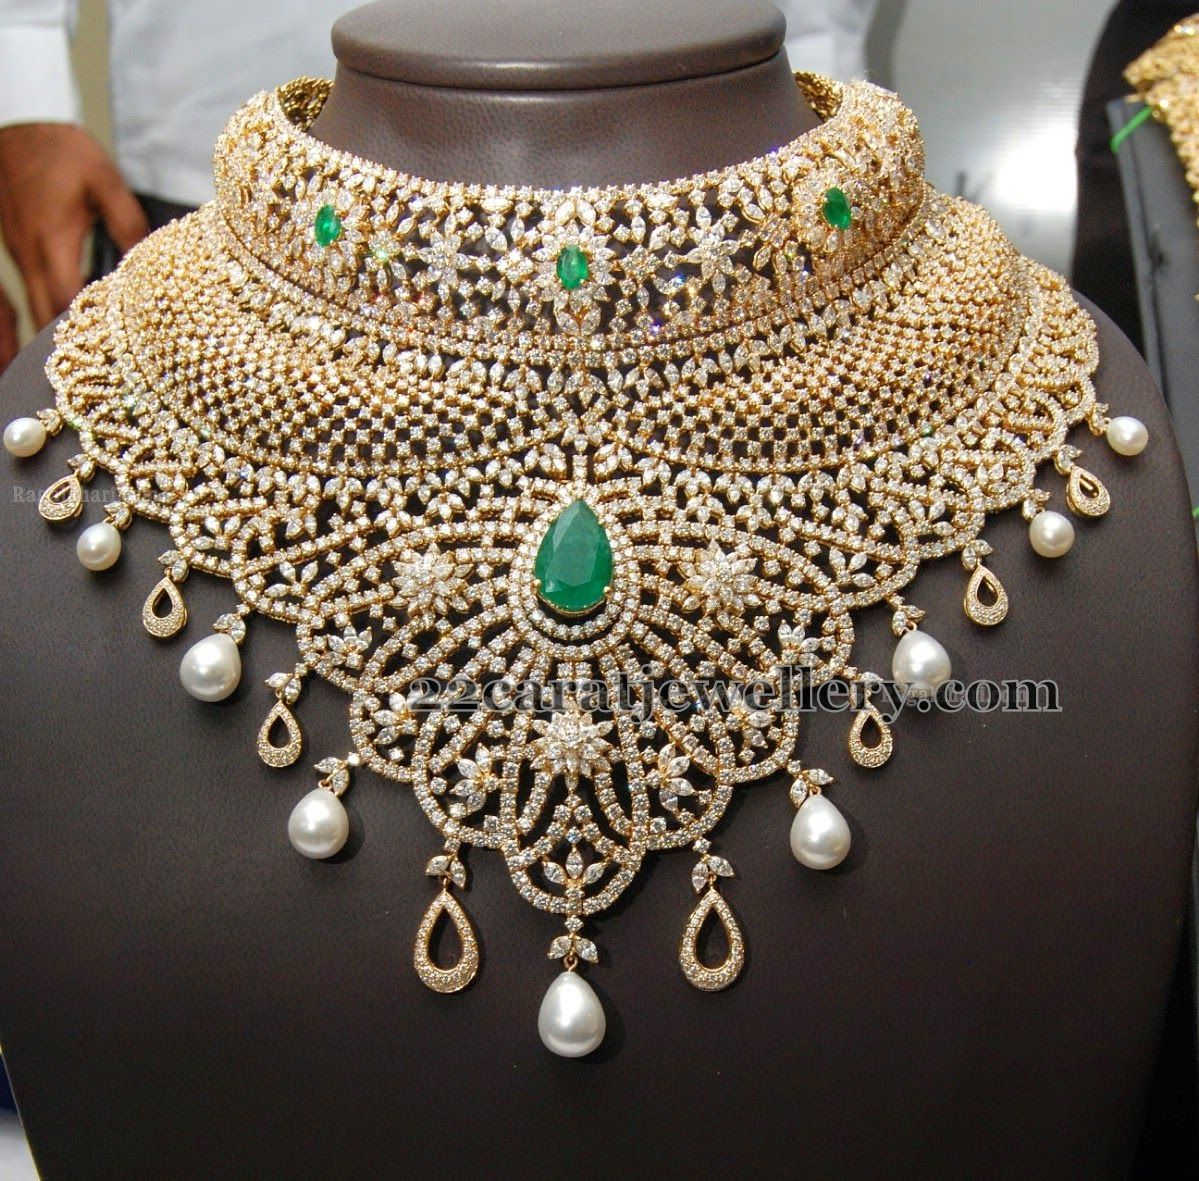 for womendesigner south indian necklaces necklace design latest irvlst diamond jewelry pretty jewellery